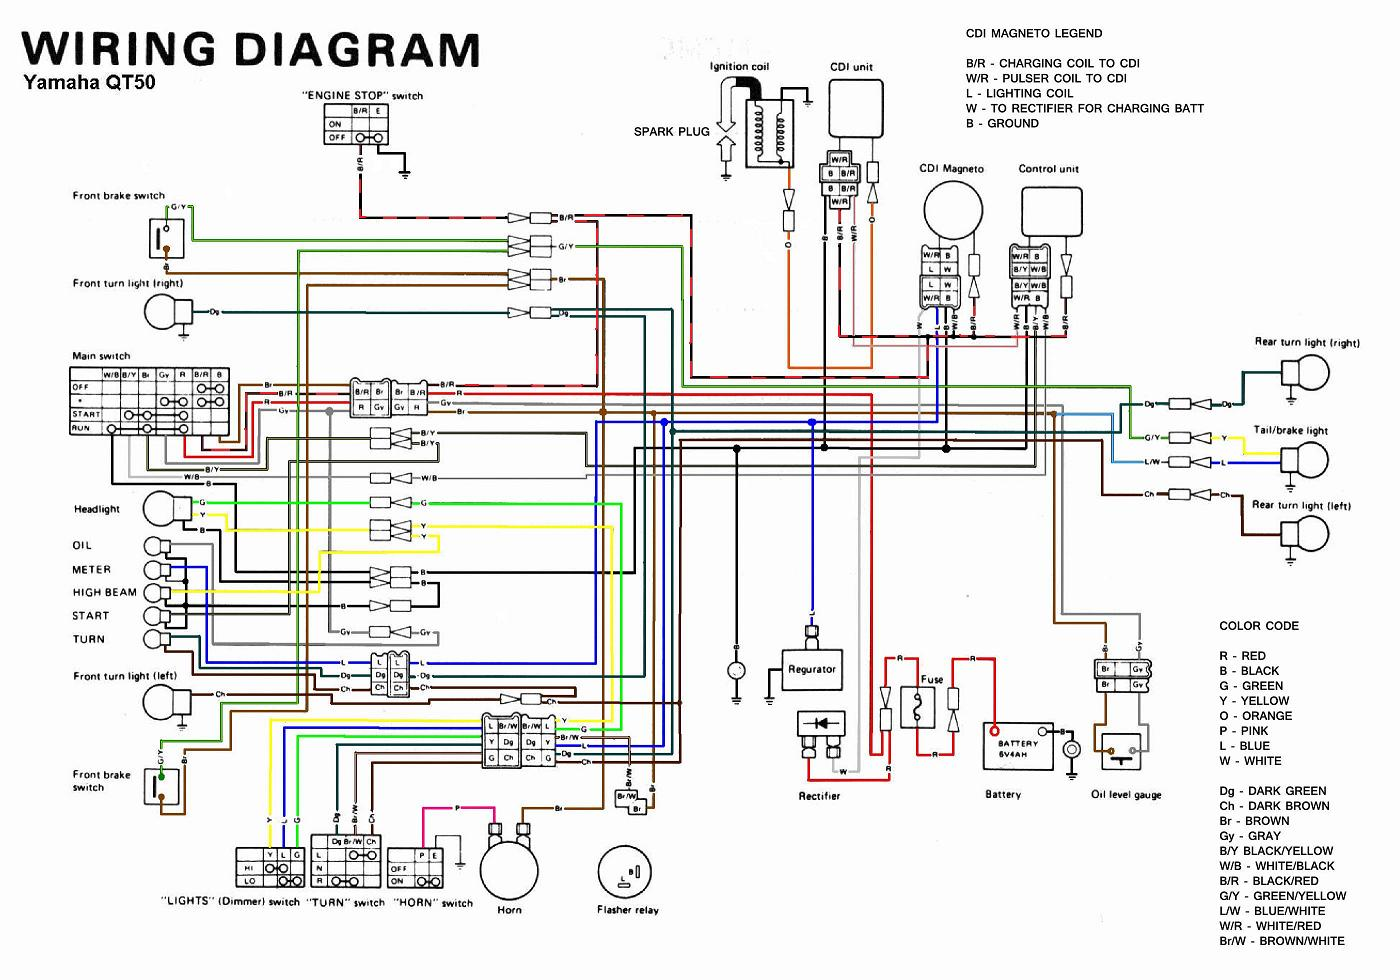 Yamaha QT50 Wiring Diagram wiring diagram for a wiring diagram for ima \u2022 wiring diagrams j y and z wiring harness at creativeand.co